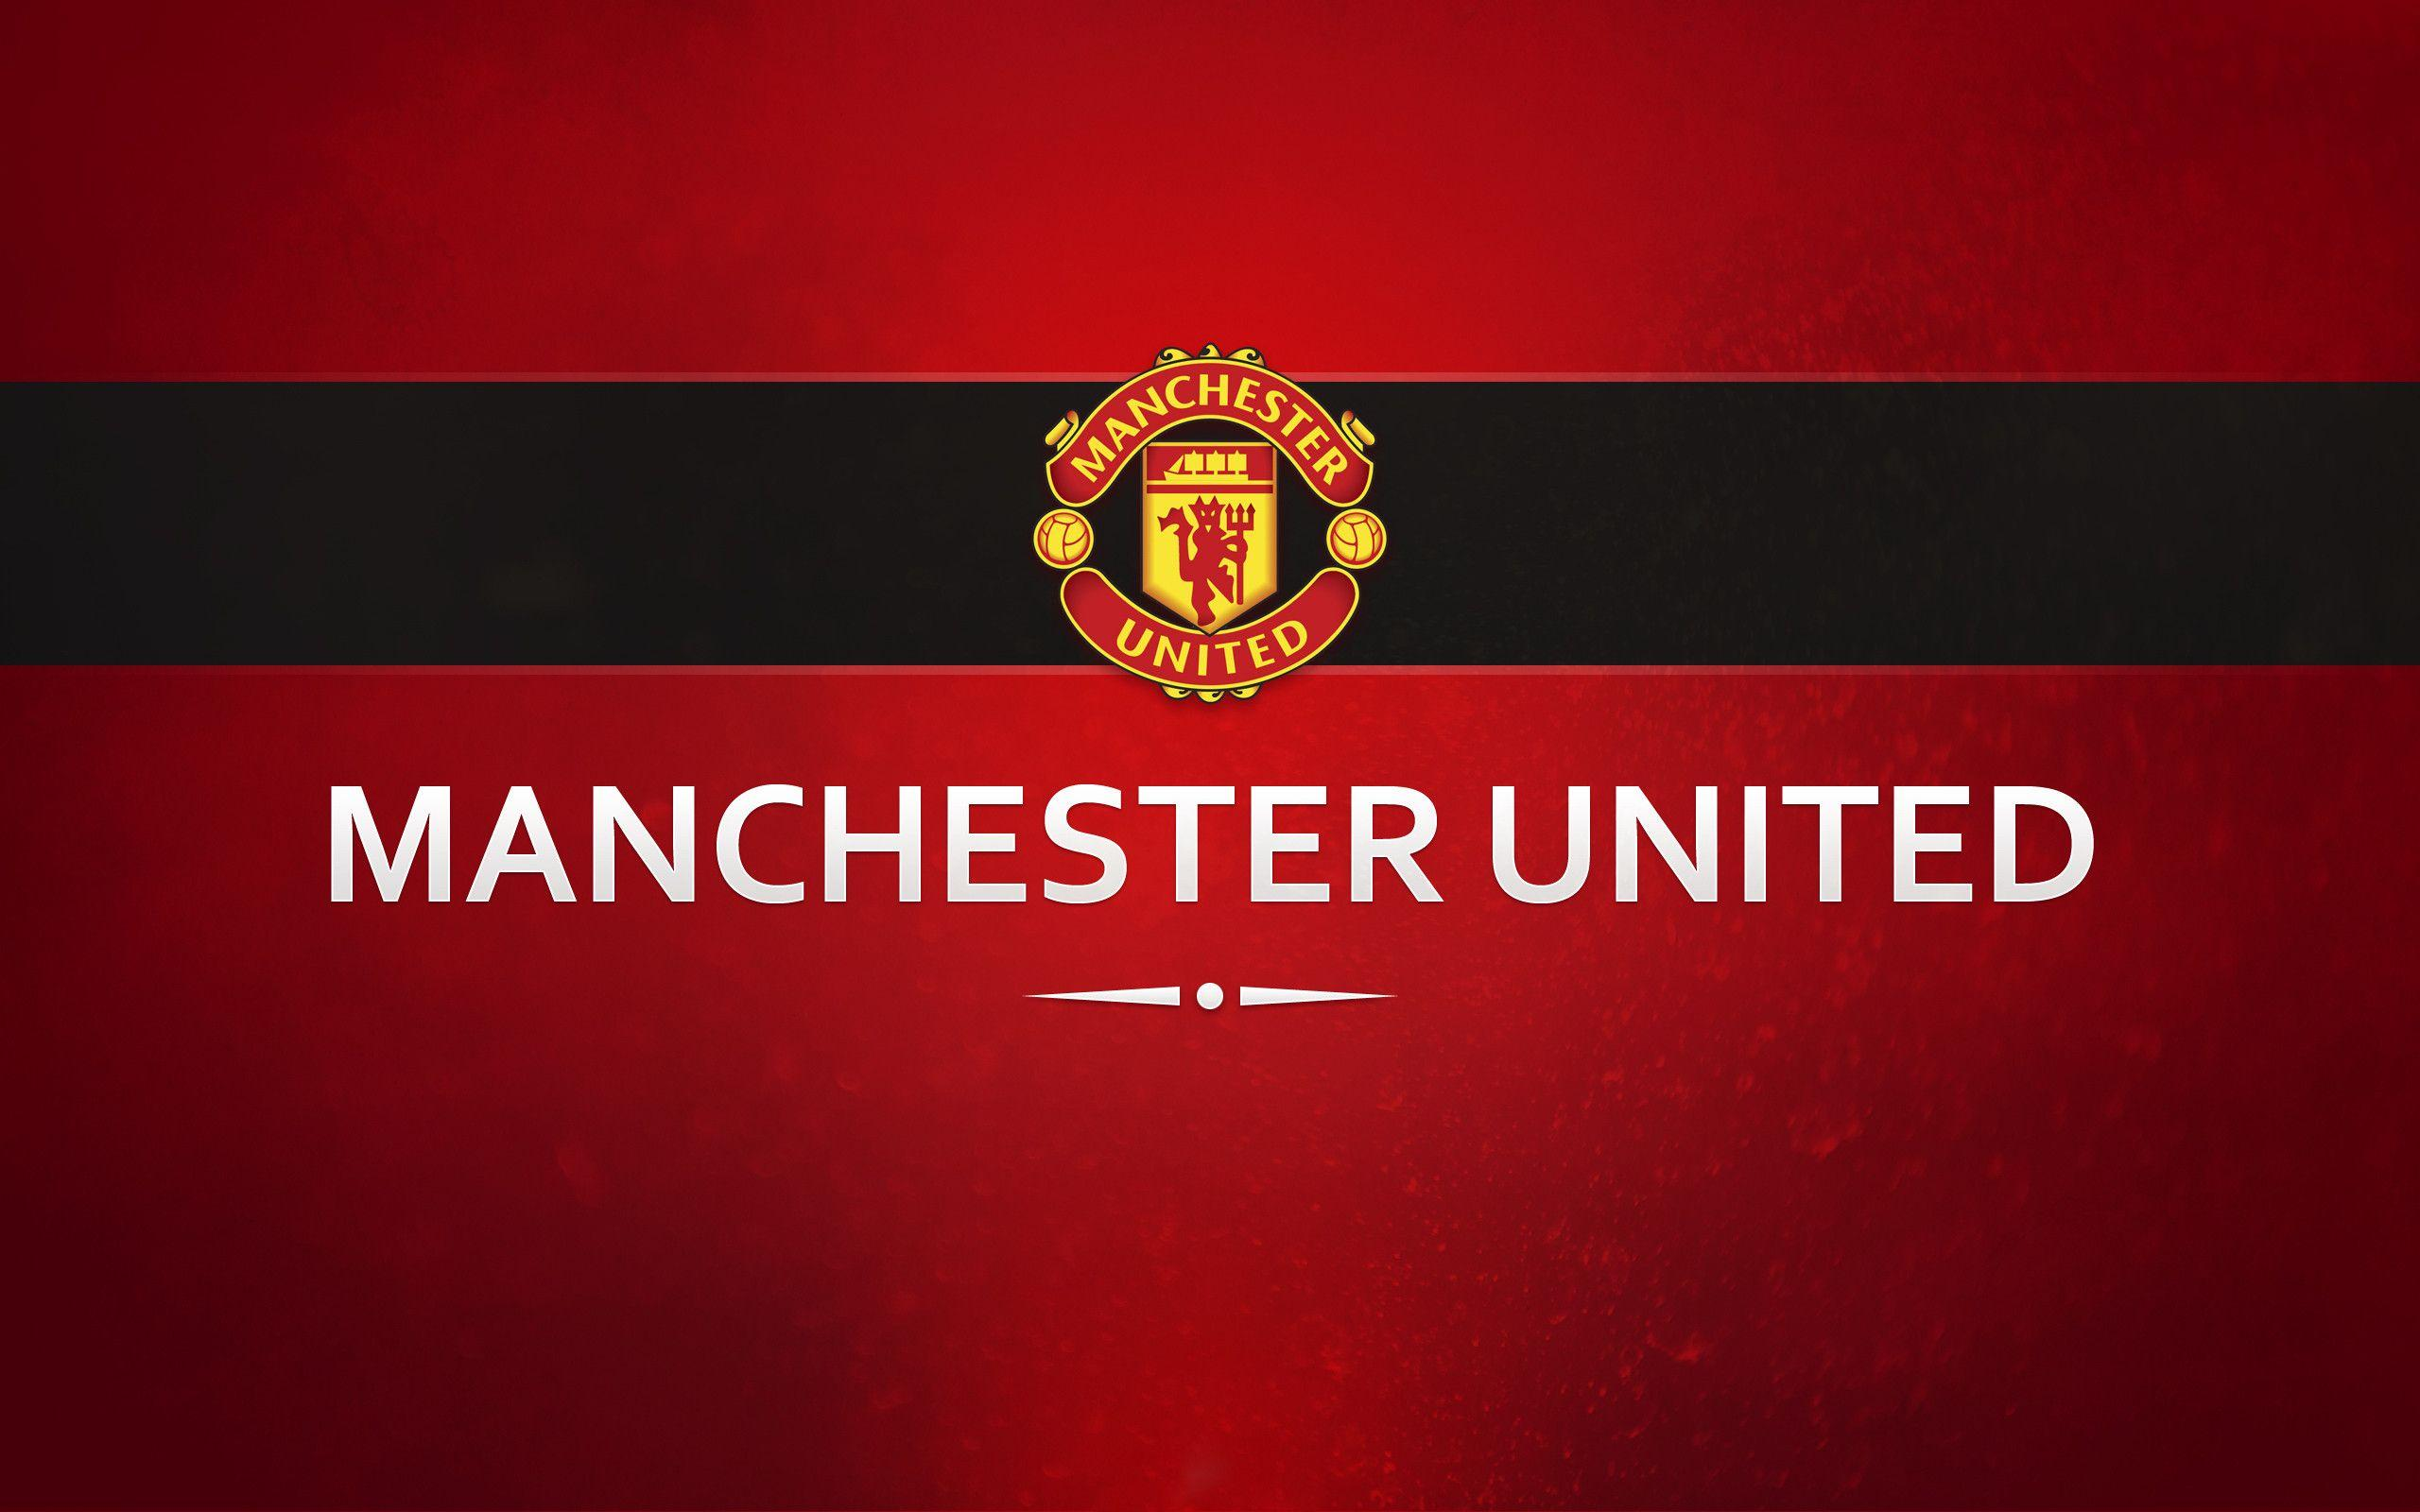 Manchester United Logo Wallpapers HD 2015 2560x1600